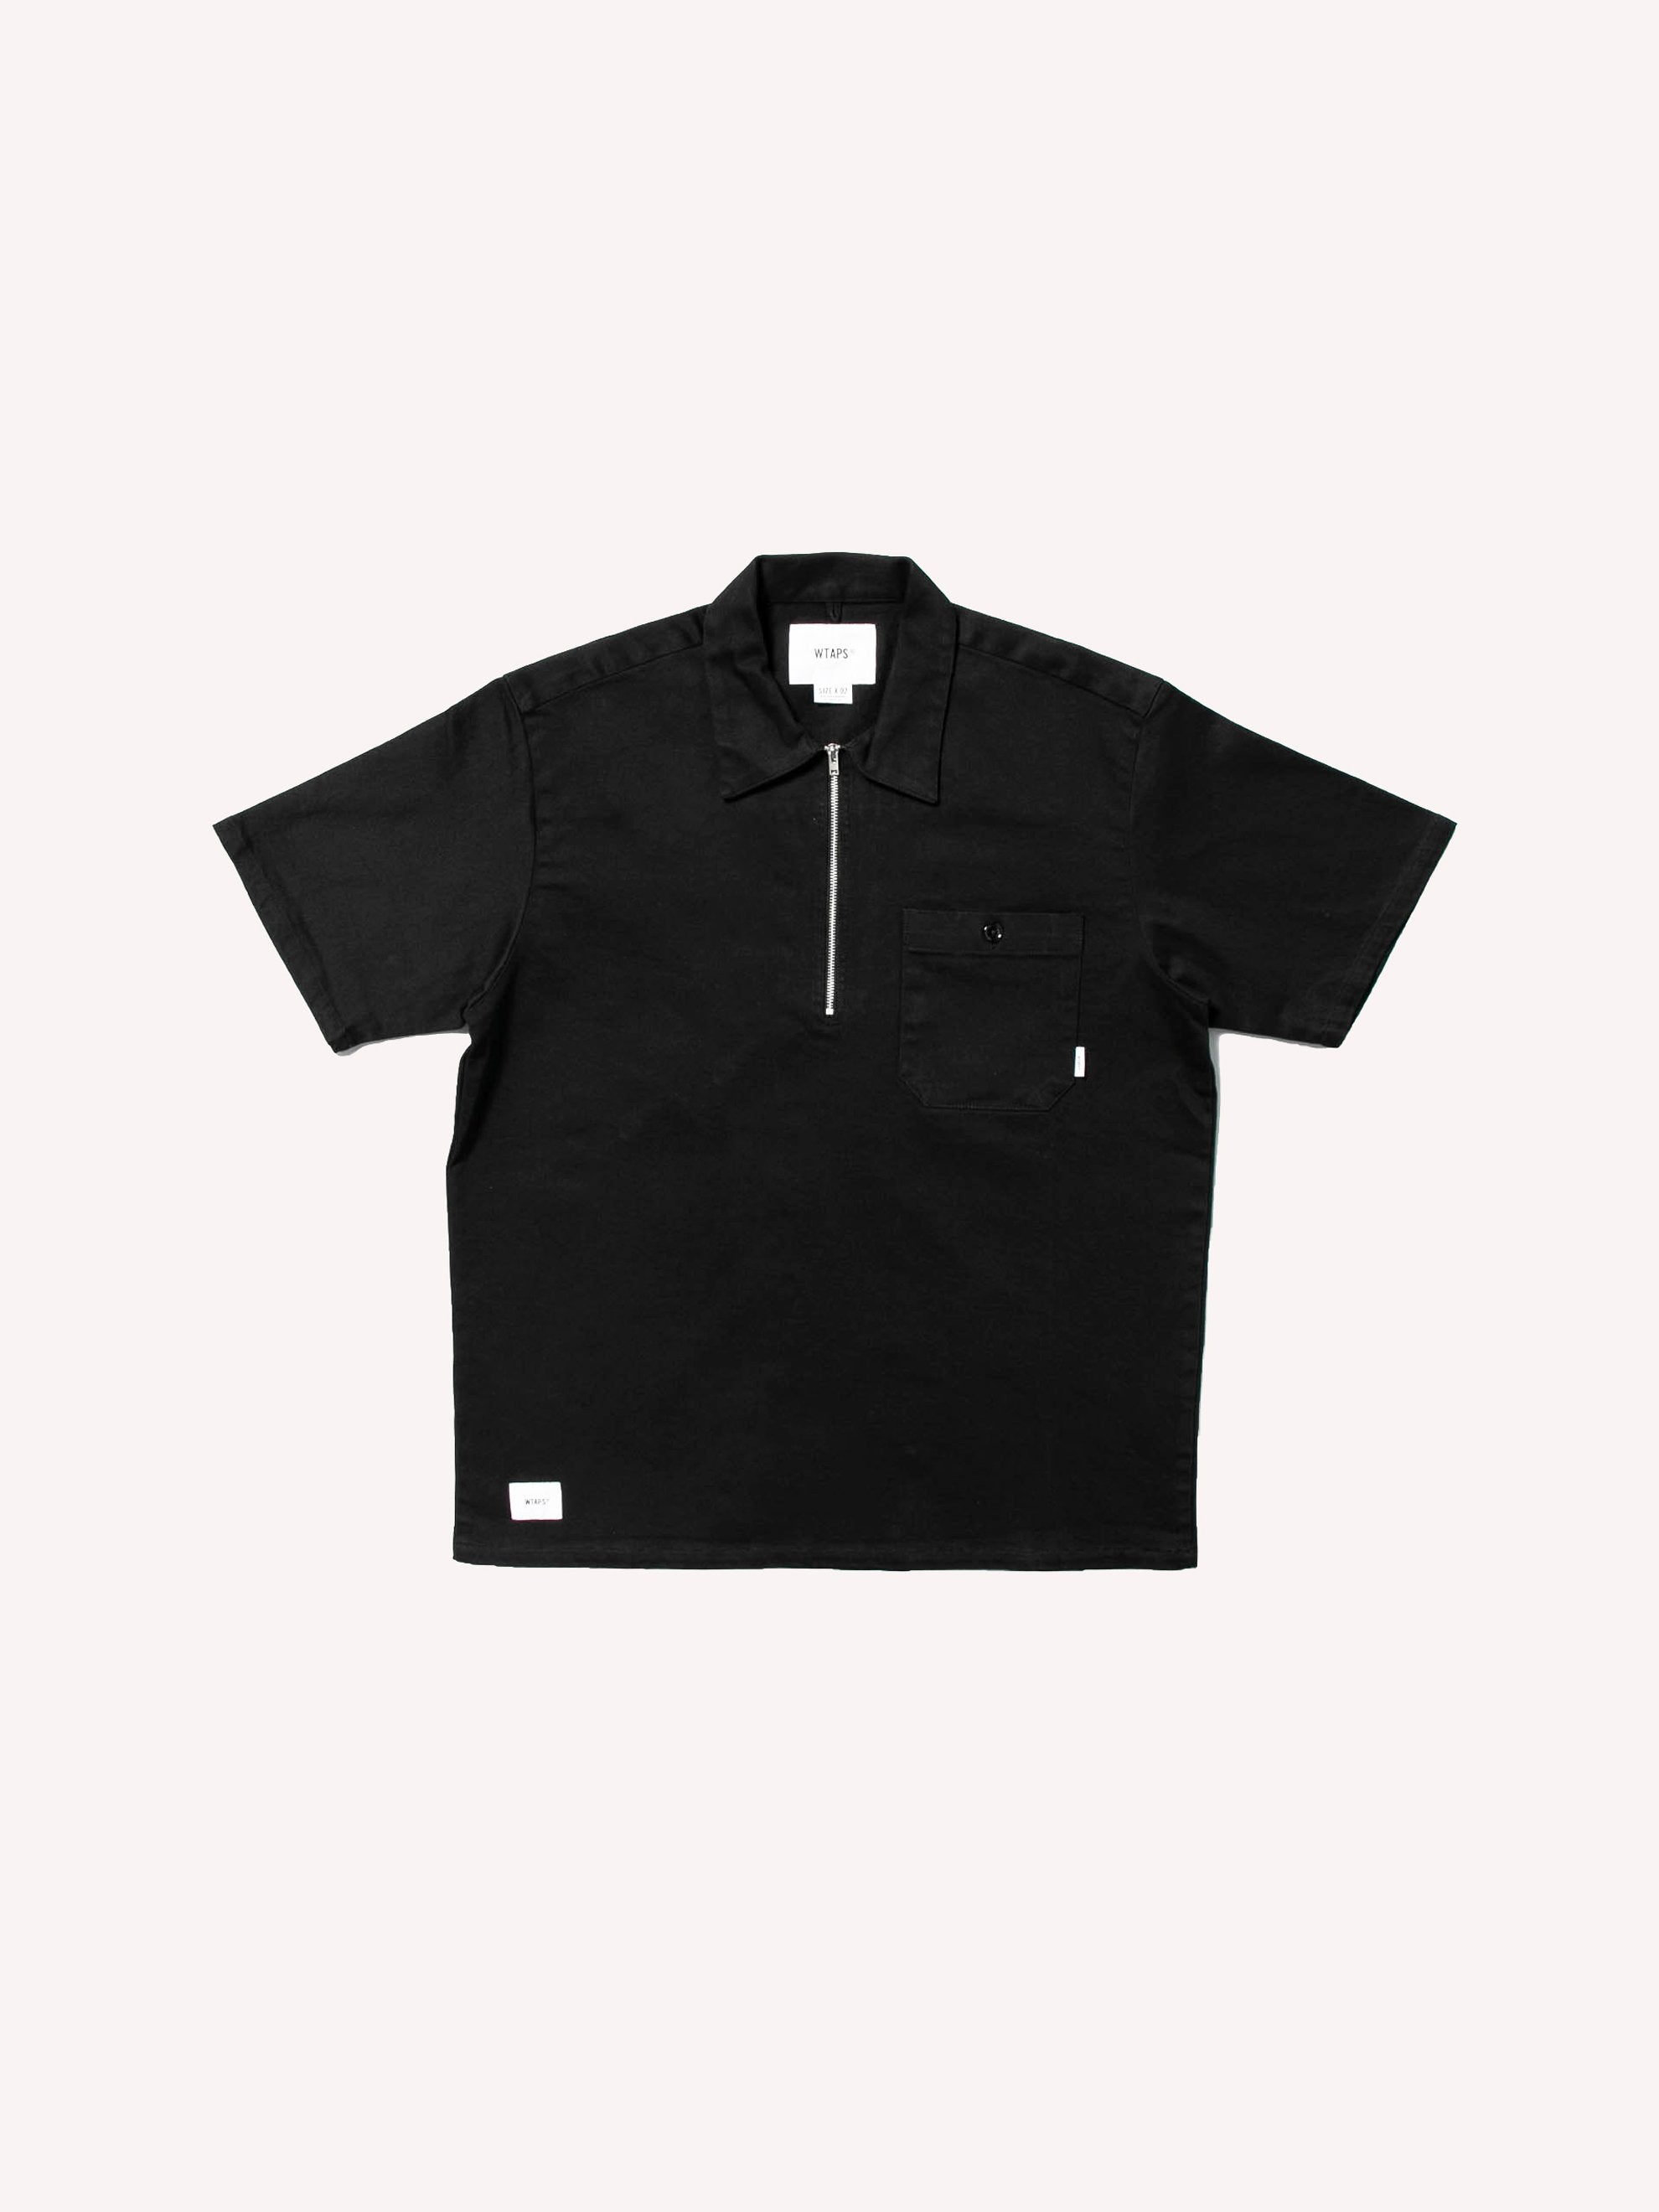 Black Cell SS / Shirt. Cotton. Twill 1